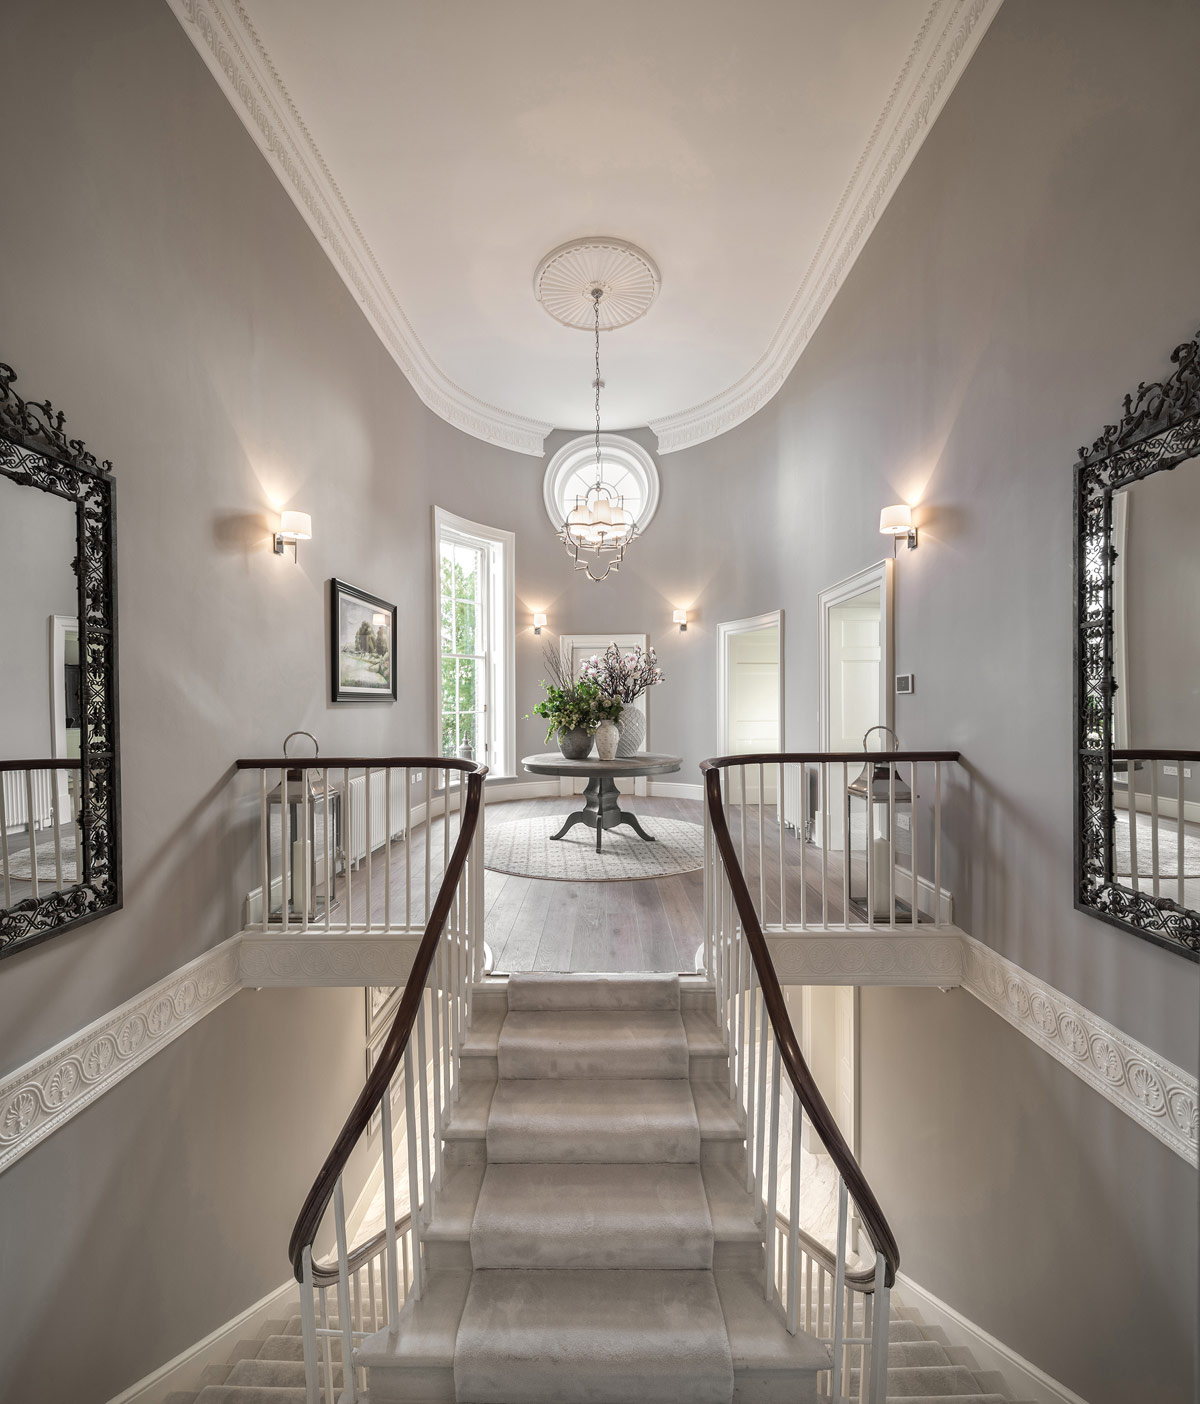 interior design, The Archetypal Ideal of the Perfect 'Dream Home'